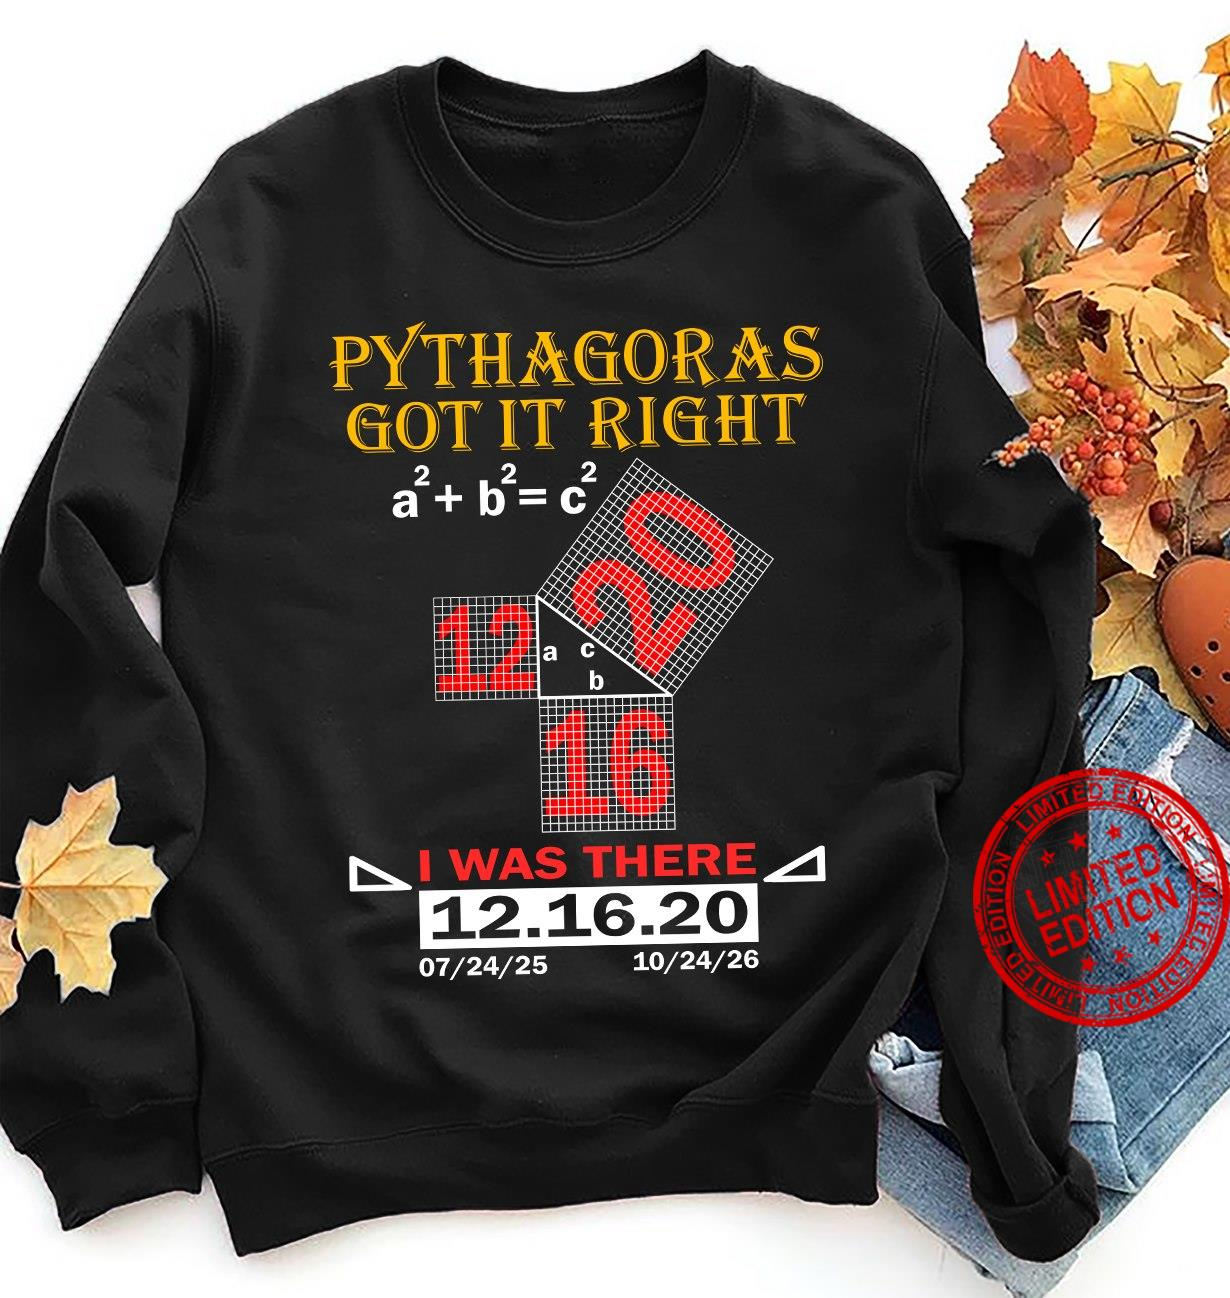 Pythagoras Got It Right I Was There 12.16.20 Shirt